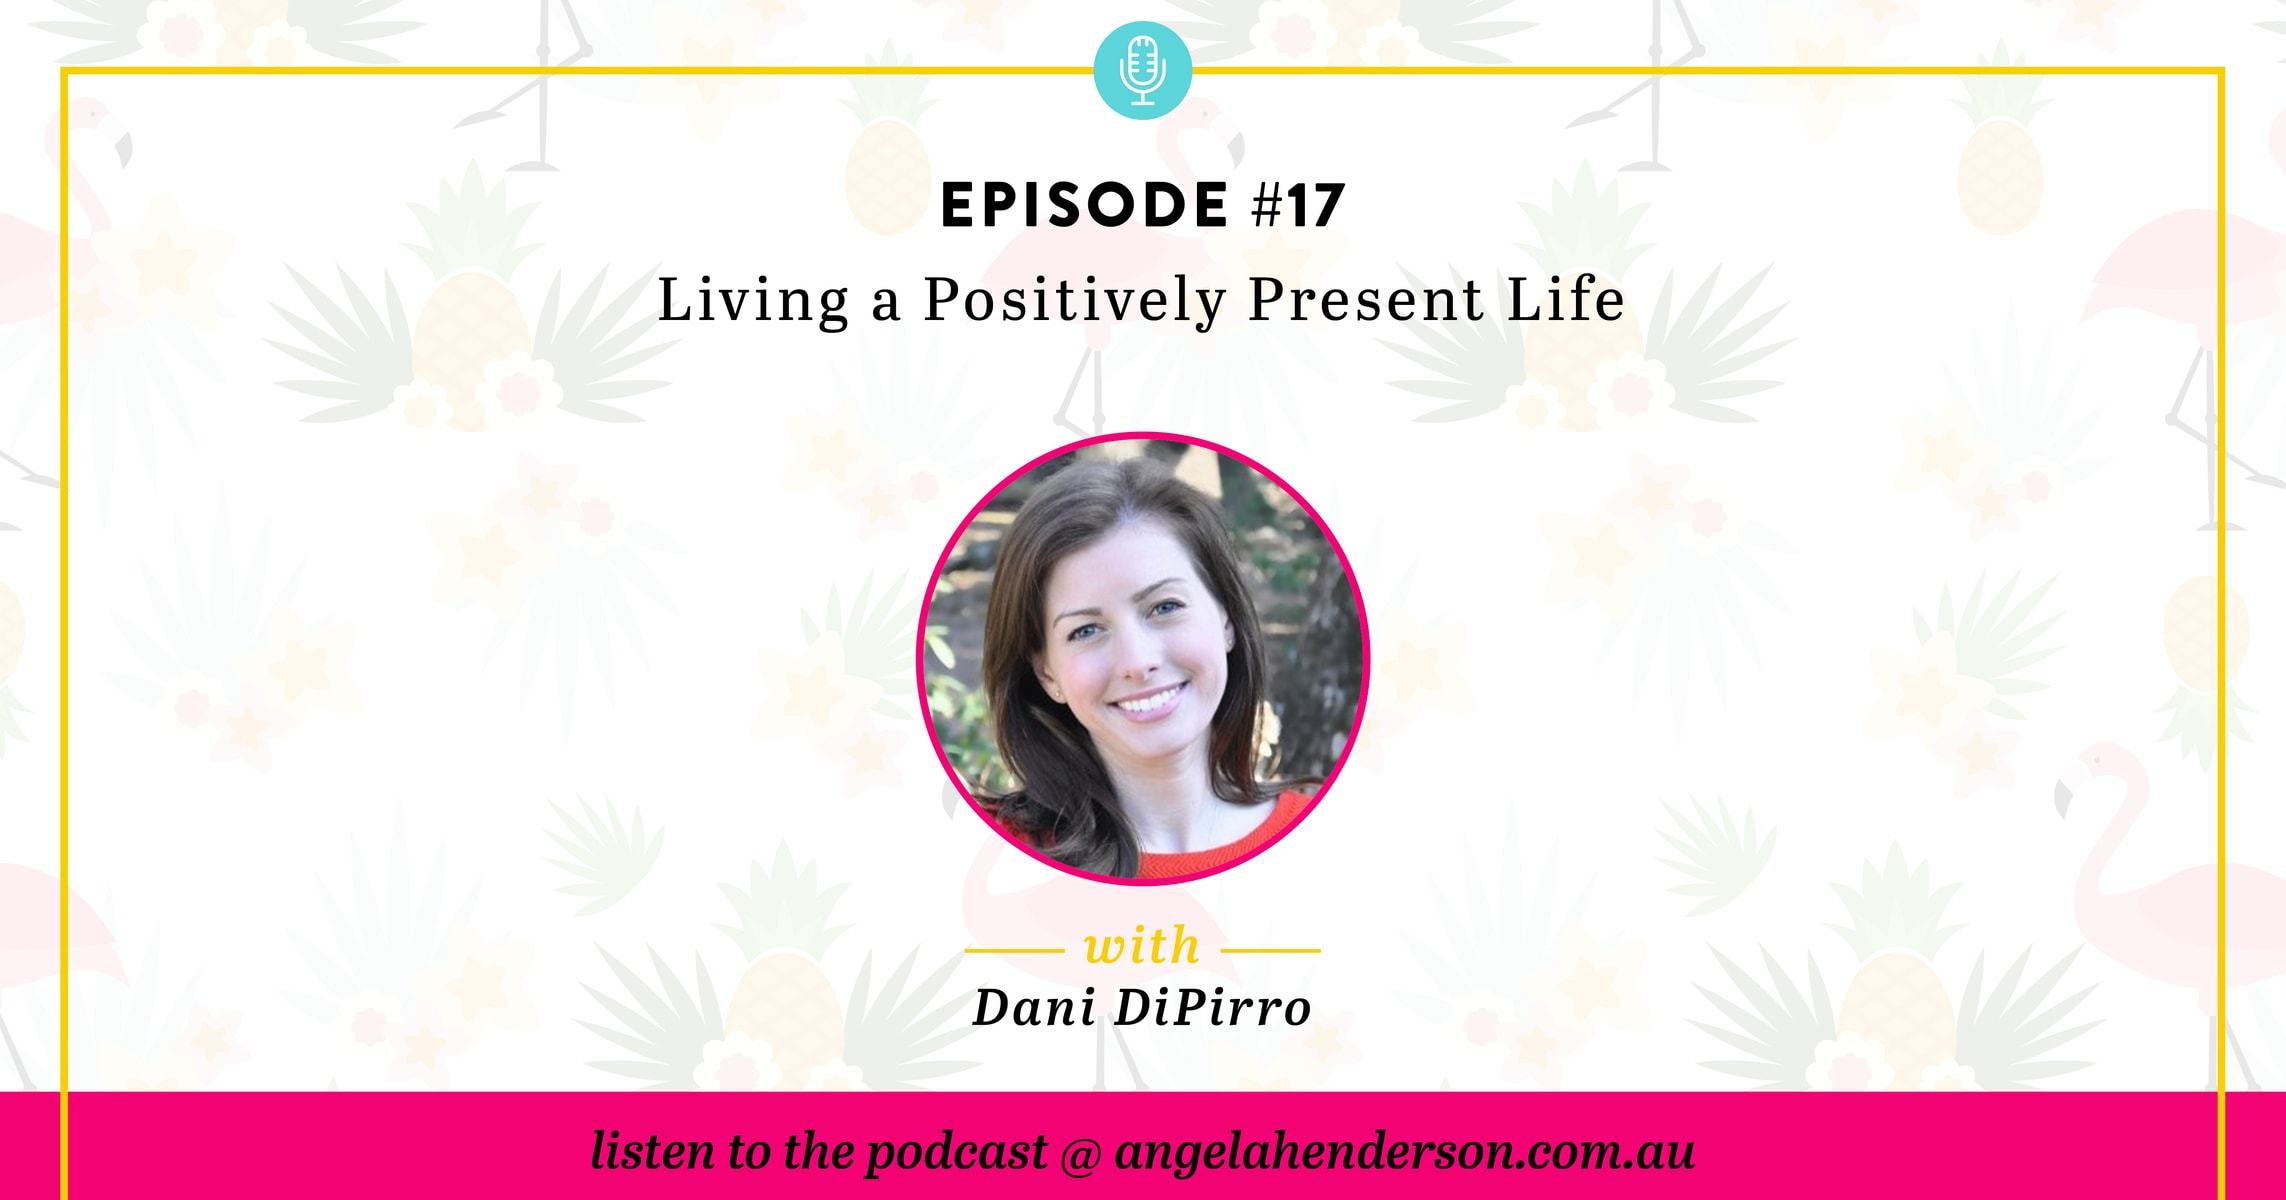 Living a Positively Present Life